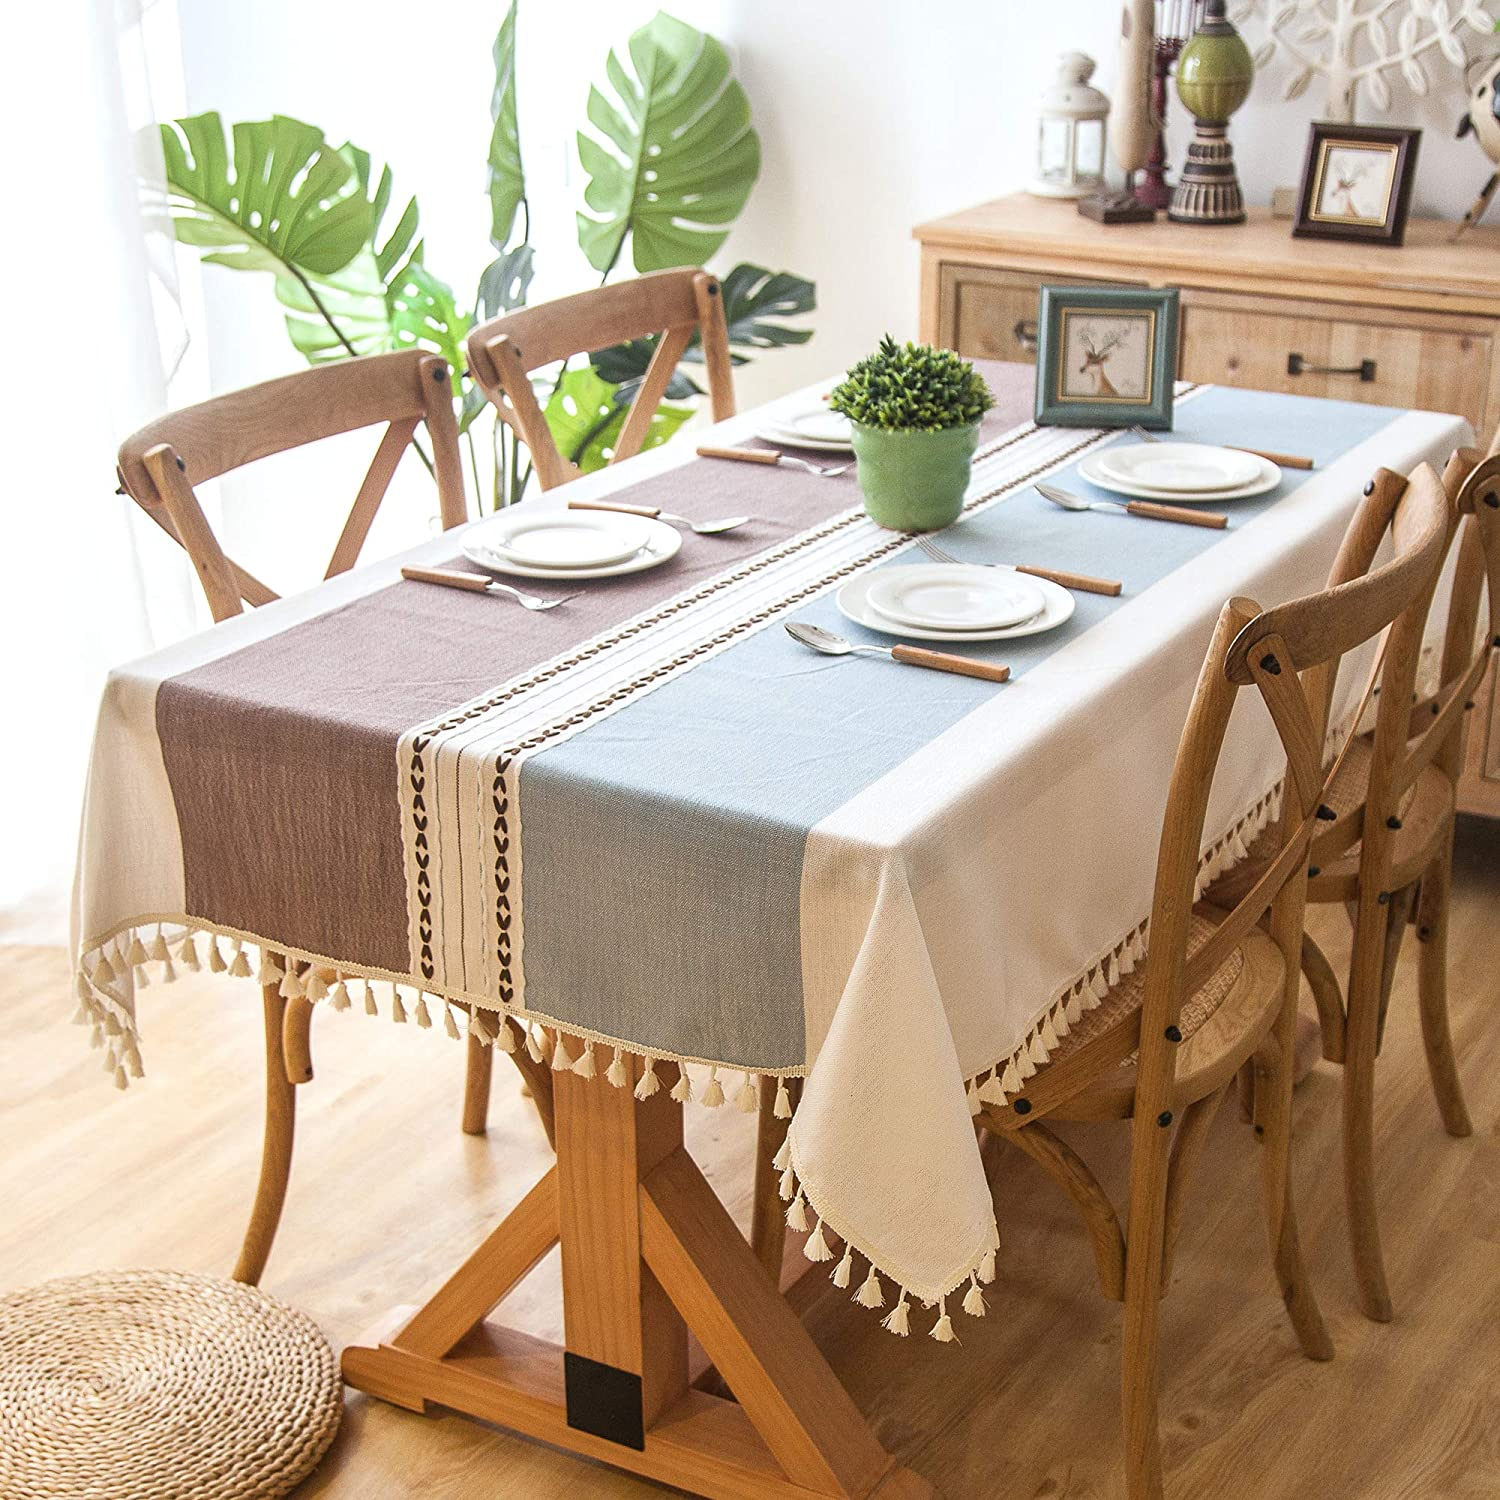 Enova Home Elegant Rectangular Thicken Cotton and Linen Tablecloth with Tassels Dust Proof Table Cover for Kitchen Dinning Tabletop Decoration (Khaki and Light Blue, 54